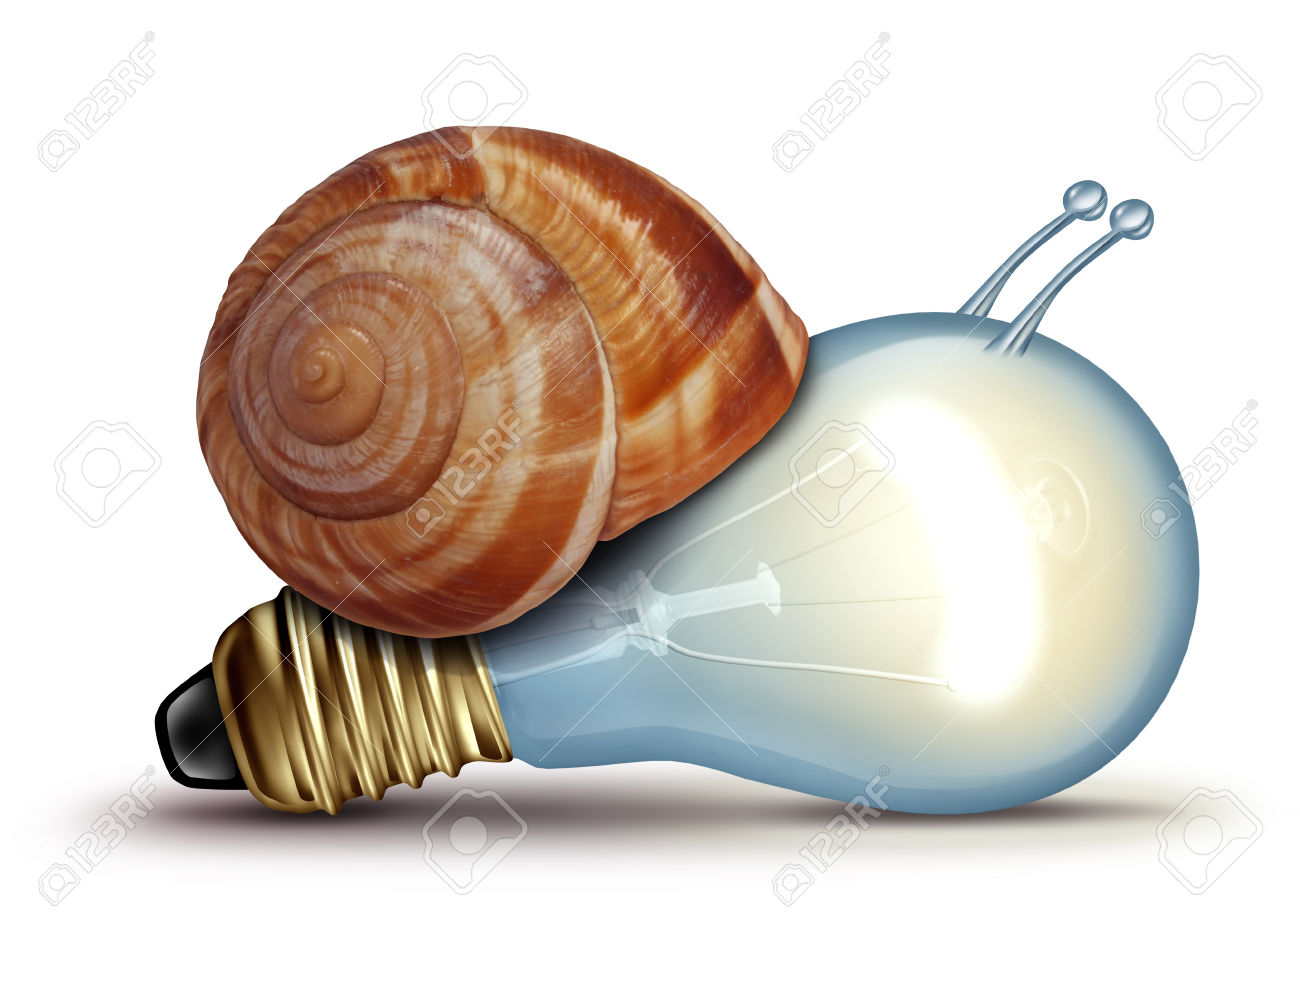 Low energy and slow creative concept as a light bulb or lightbulb with a snail shell as an innovation crisis metaphor for creativity issues facing new ideas to innovate on a white background.